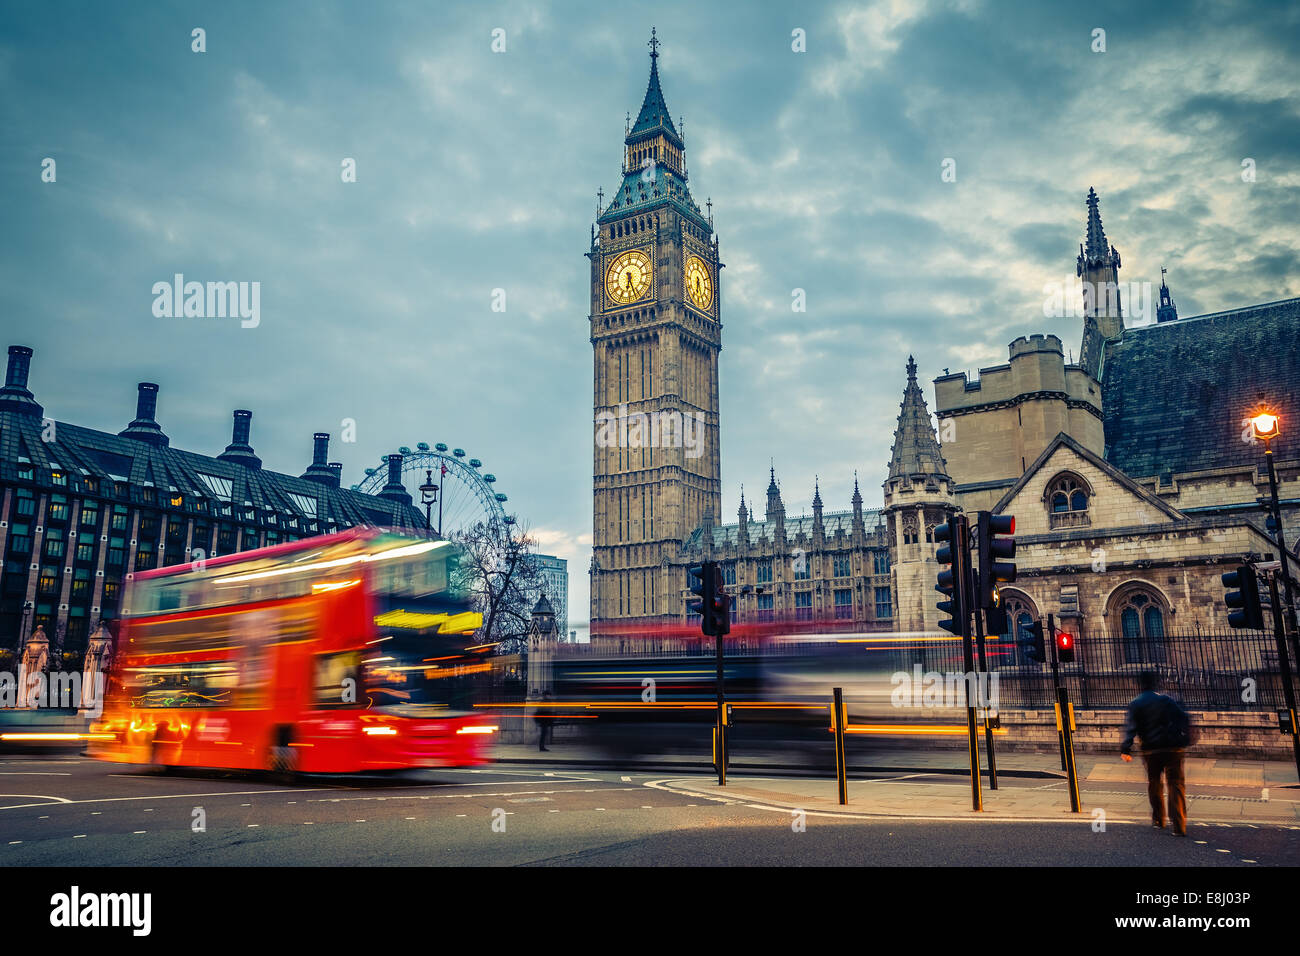 London at early morning - Stock Image